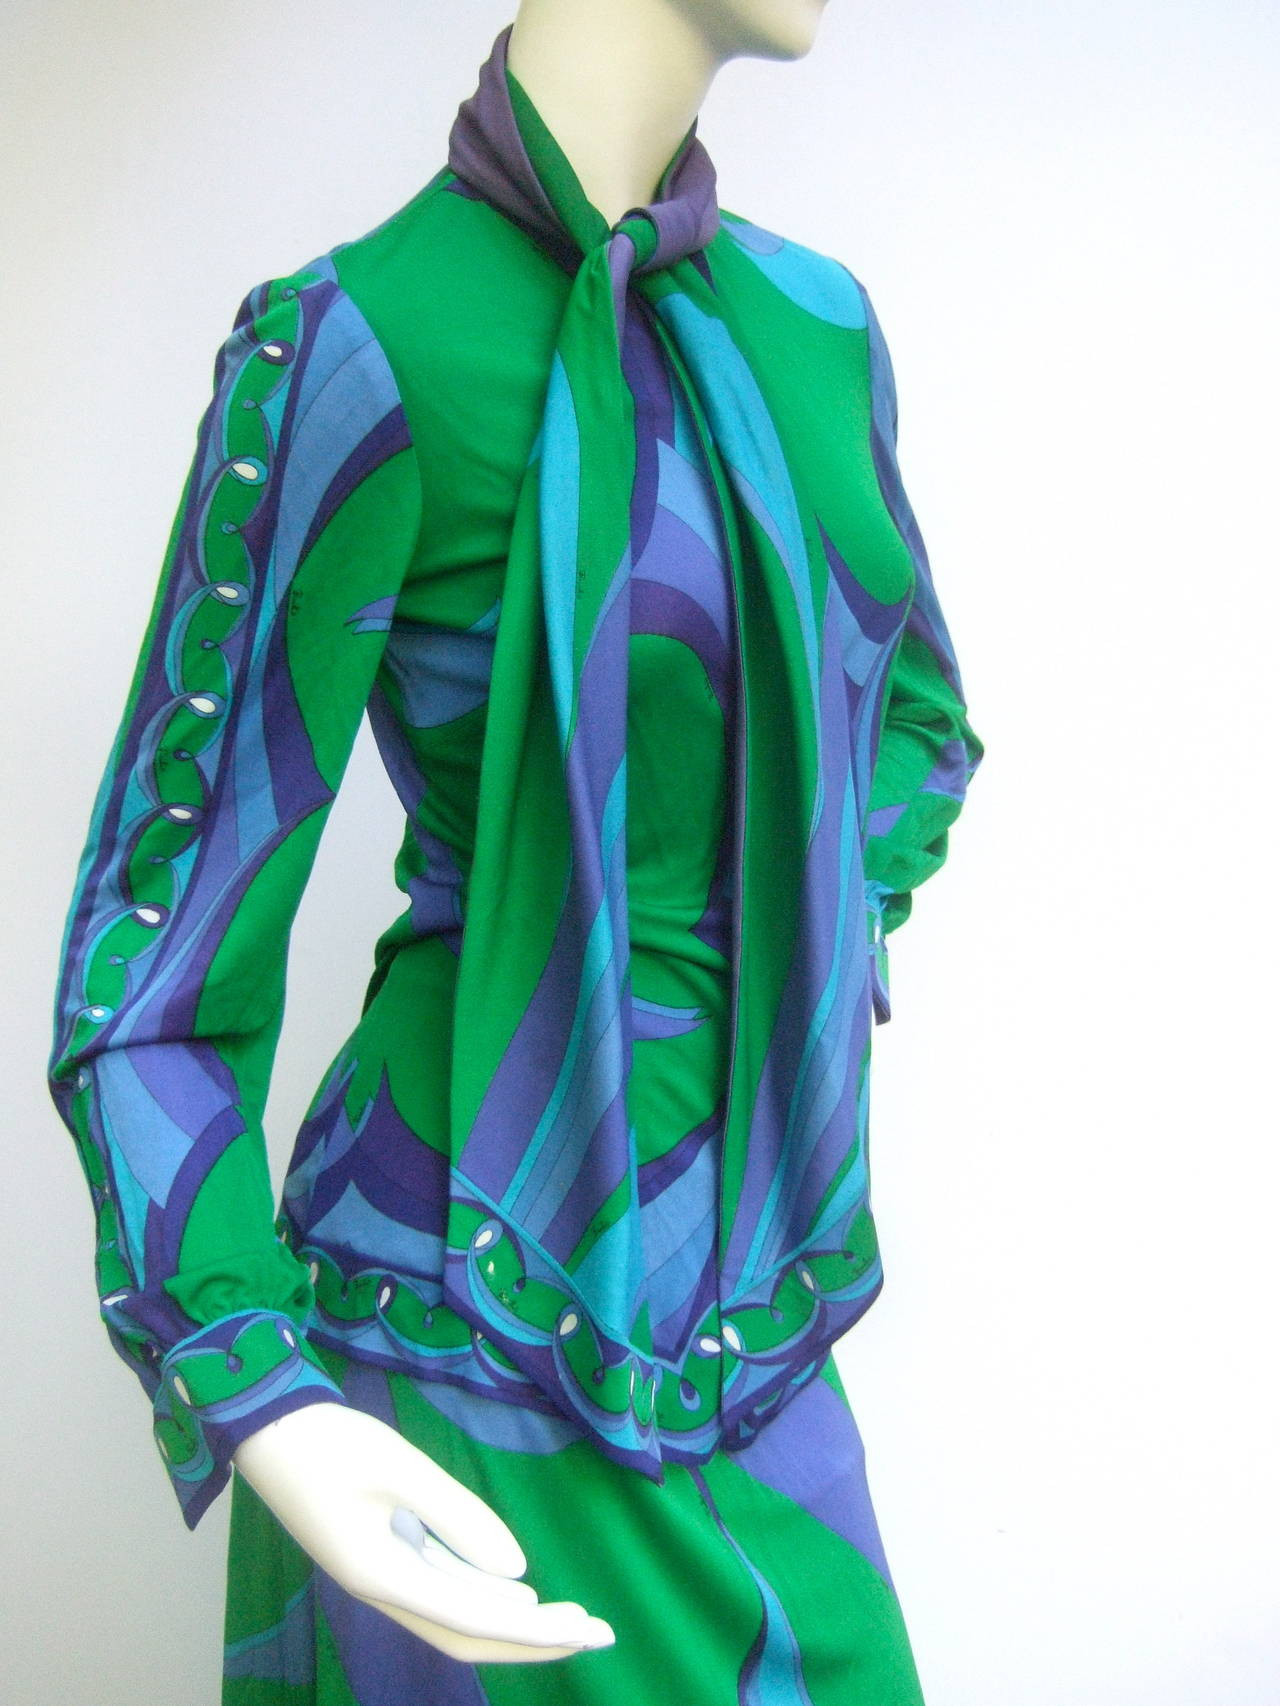 EMILIO PUCCI Silk Jersey Blend Blouse & Skirt Set c 1970 3